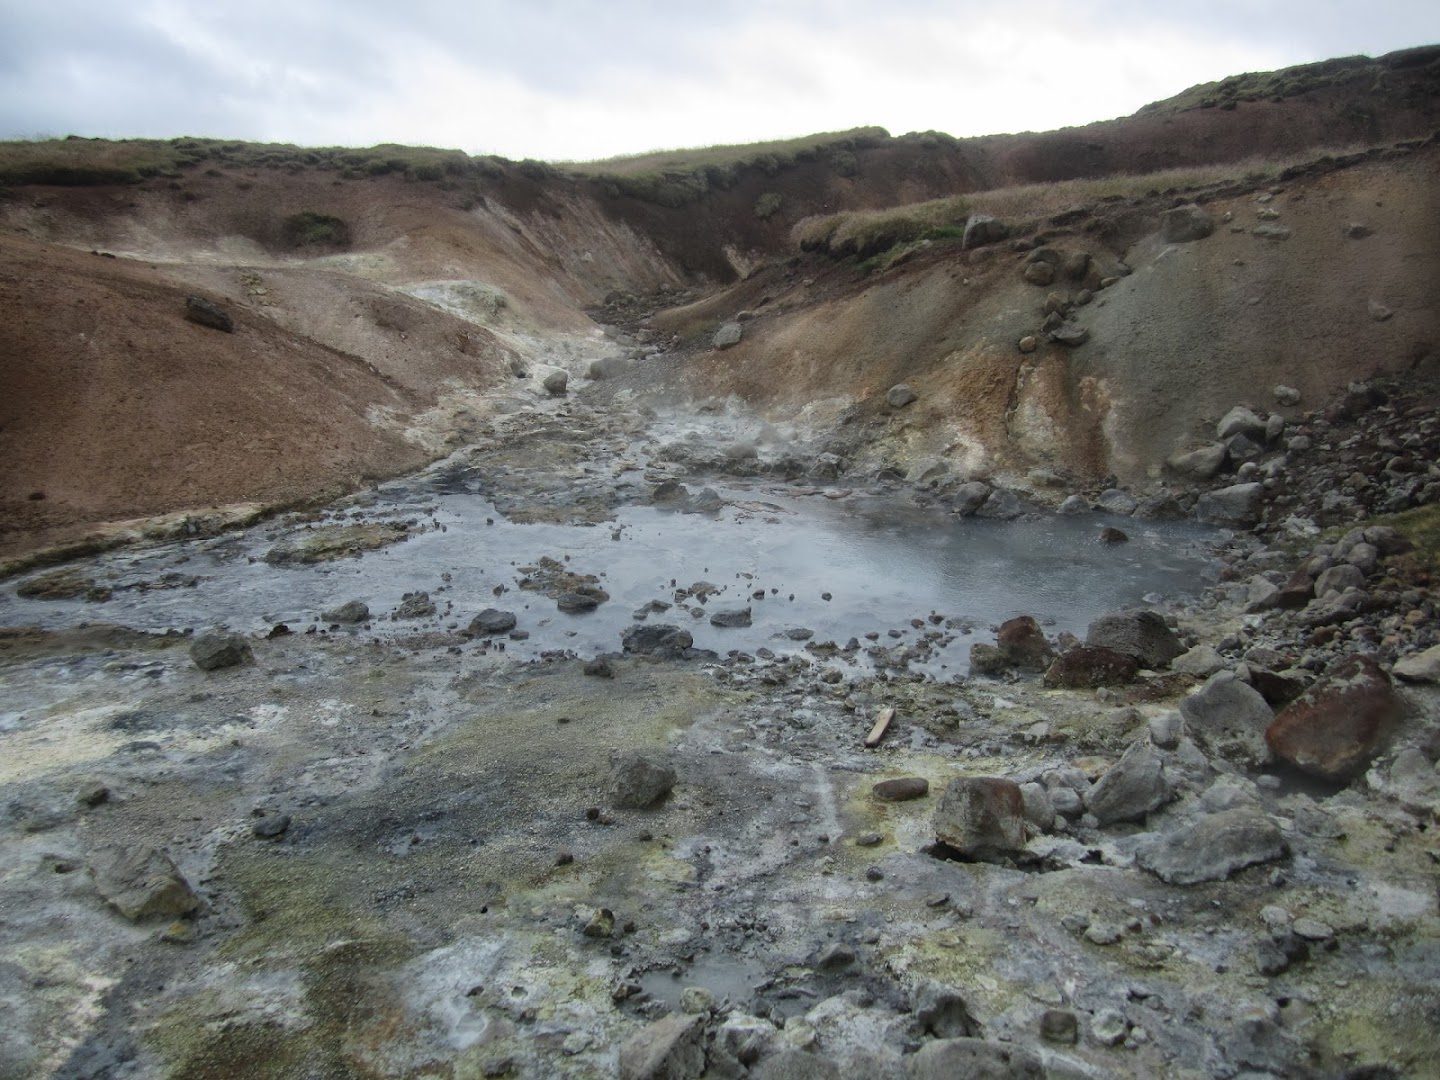 Bubbling, smelly mud pools at Krysuvic, Reykjanes peninsula. Lots of precipitated sulphur on ground. VK